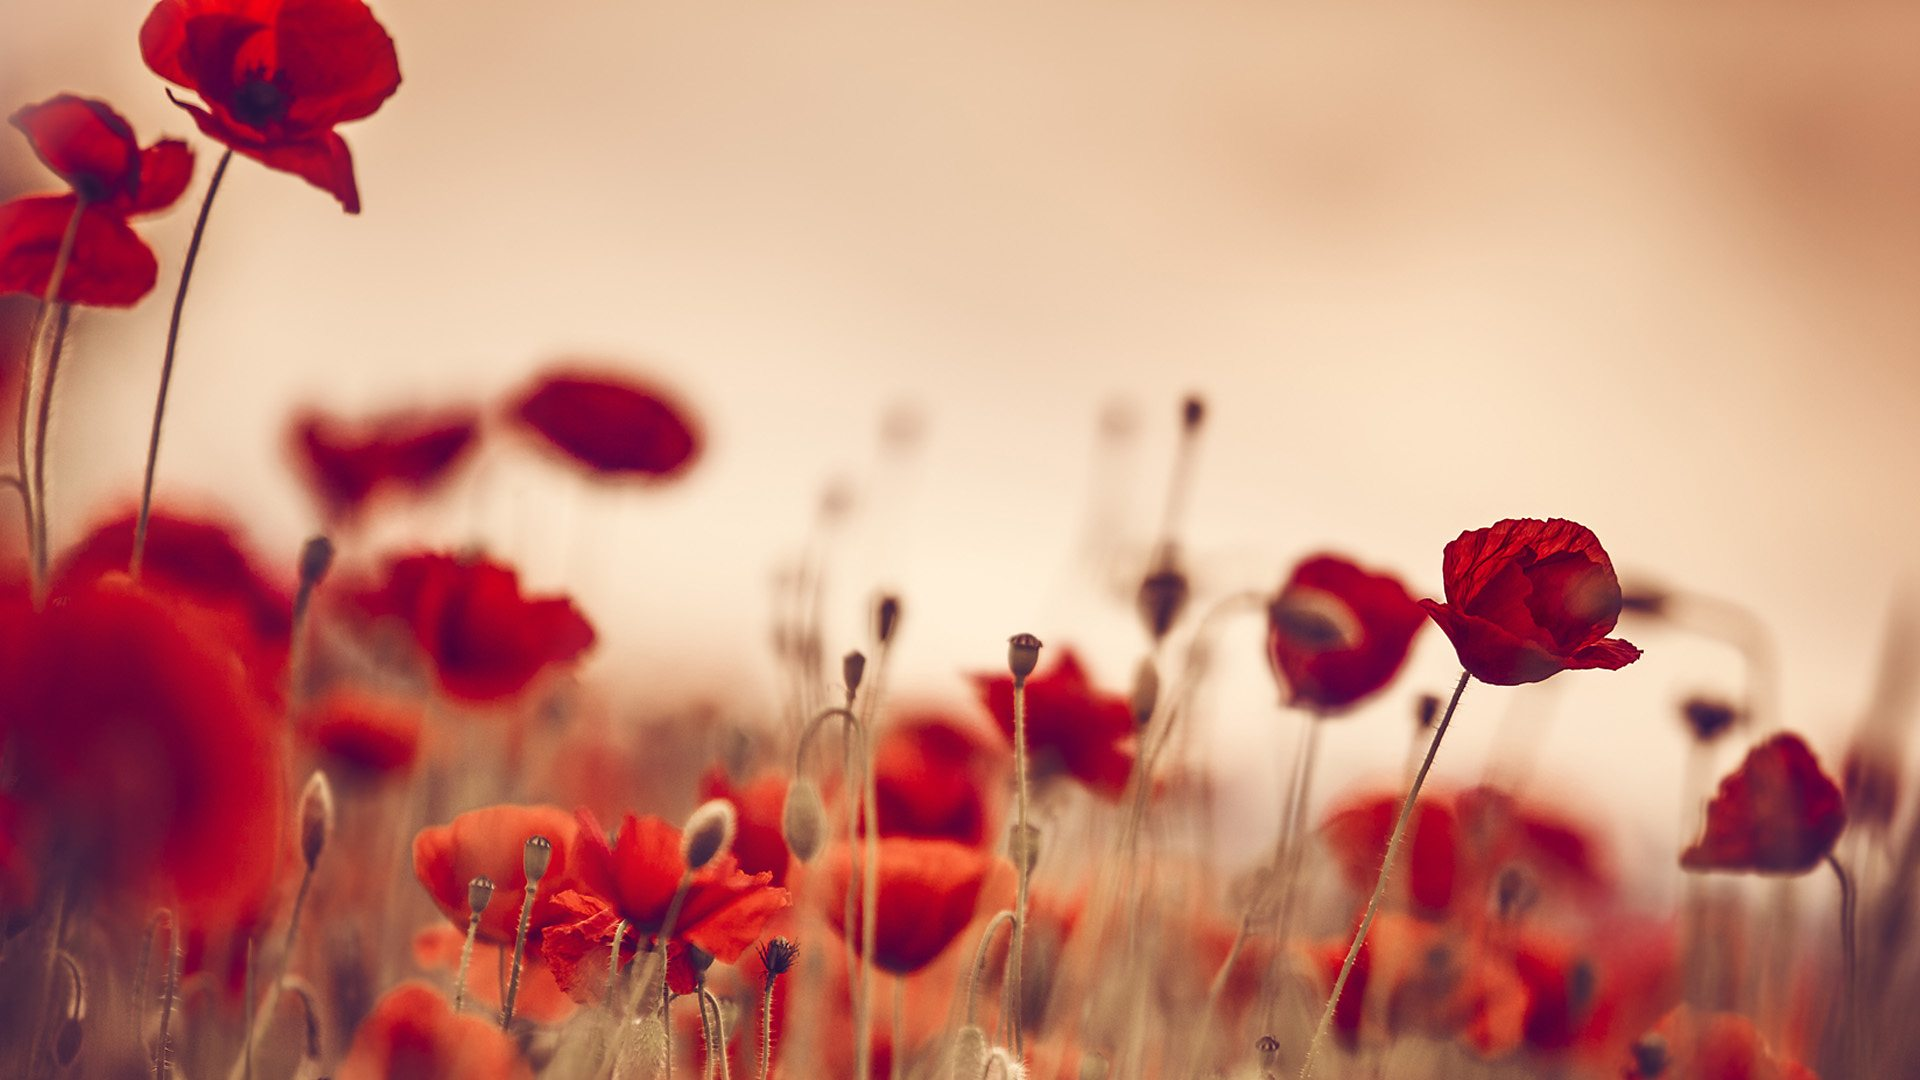 Bbc radio 3 the essay seven significant facts about poppies mightylinksfo